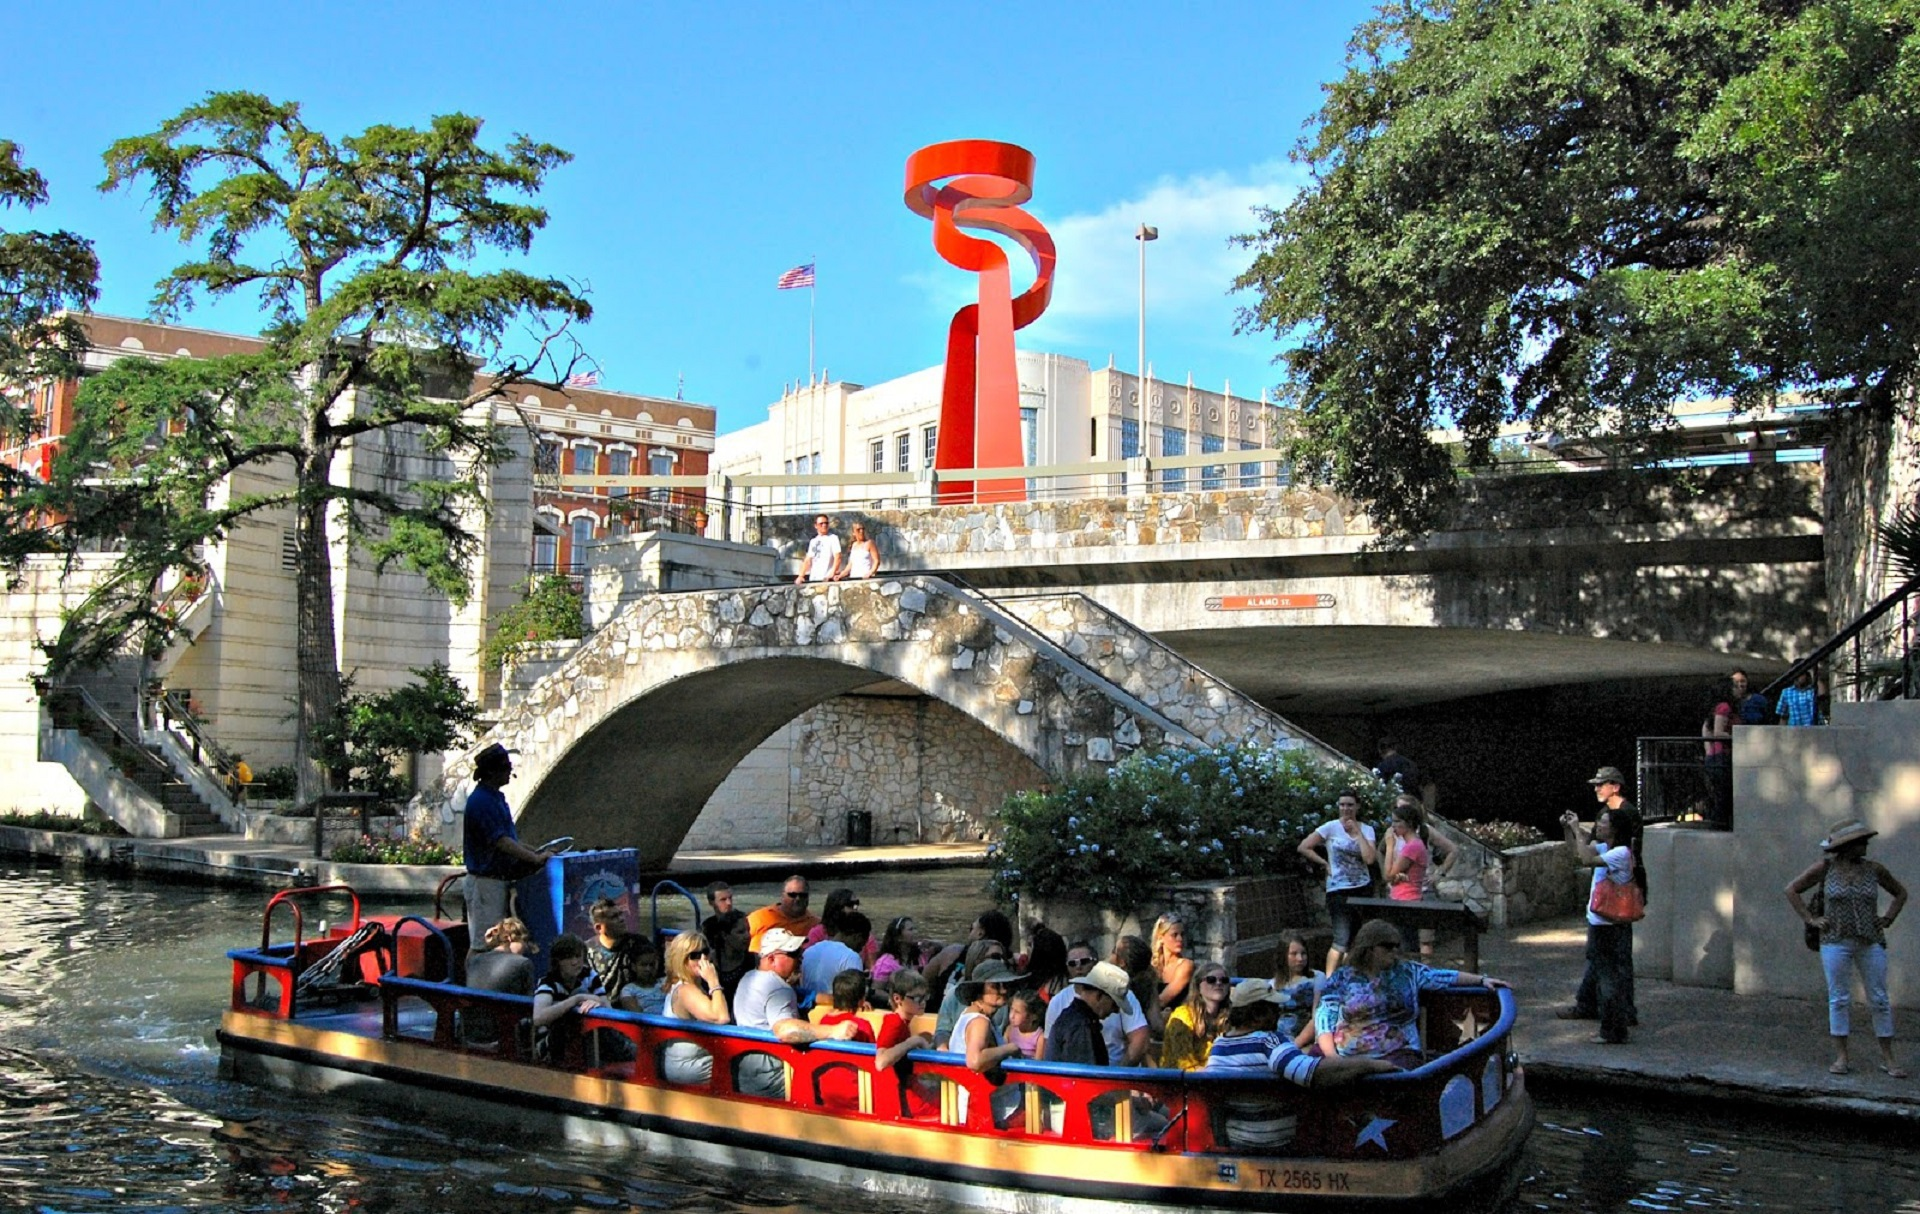 San Antonio Hd Background